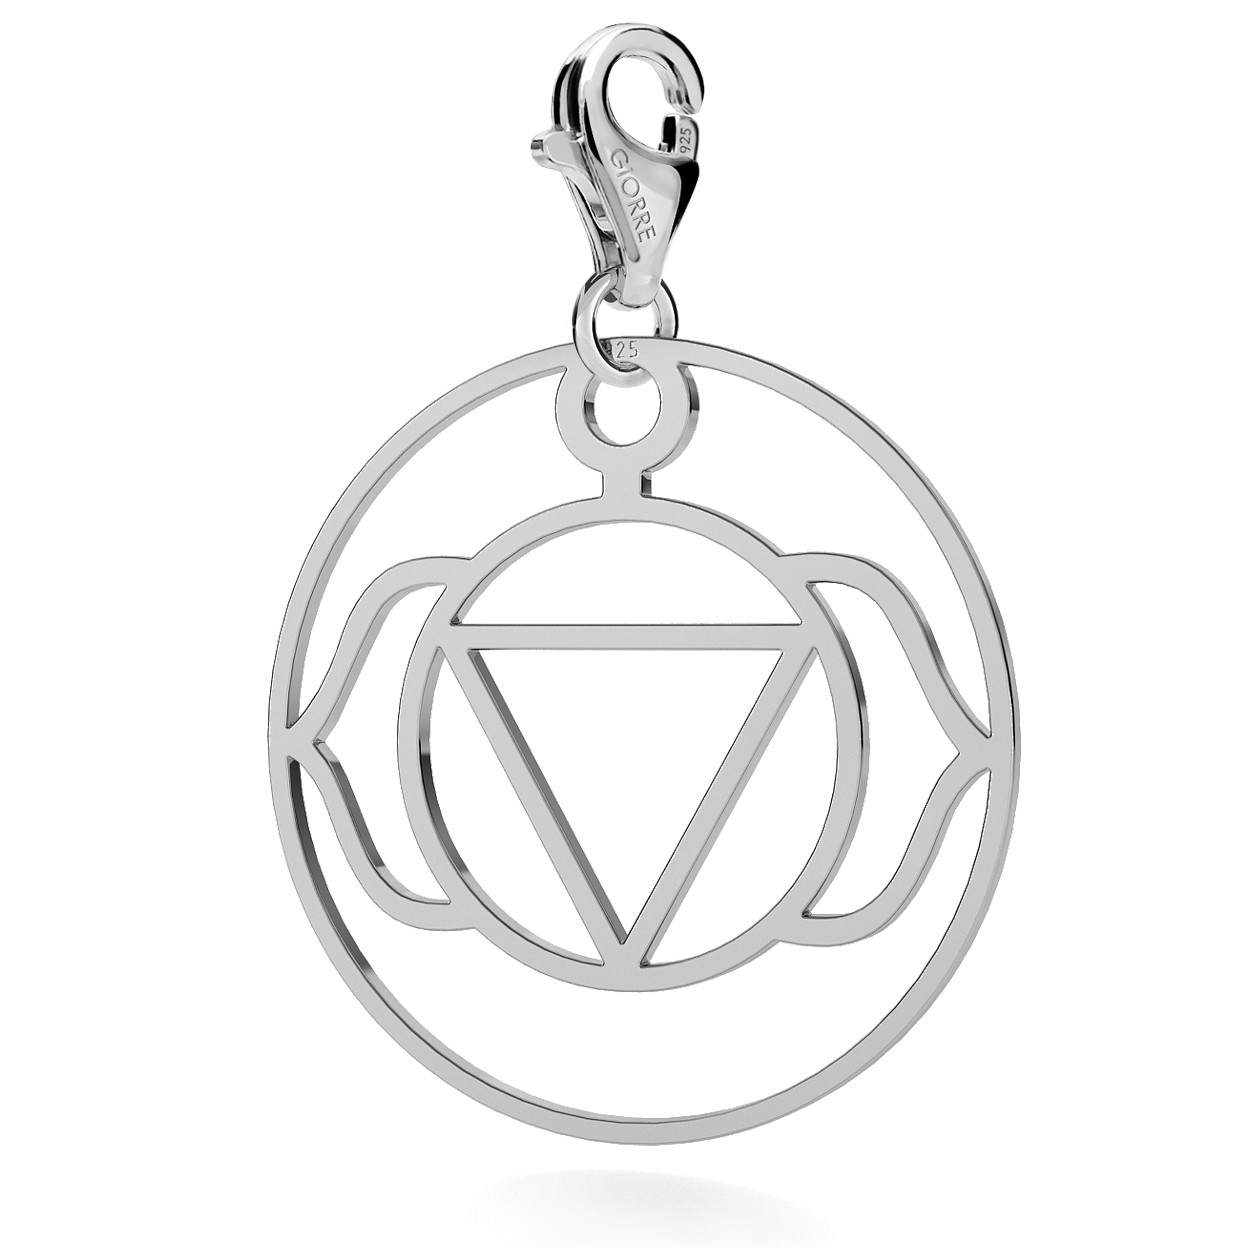 CHARM 69, THIRD EYE CHAKRA, STERLING SILVER (925) RHODIUM OR GOLD PLATED